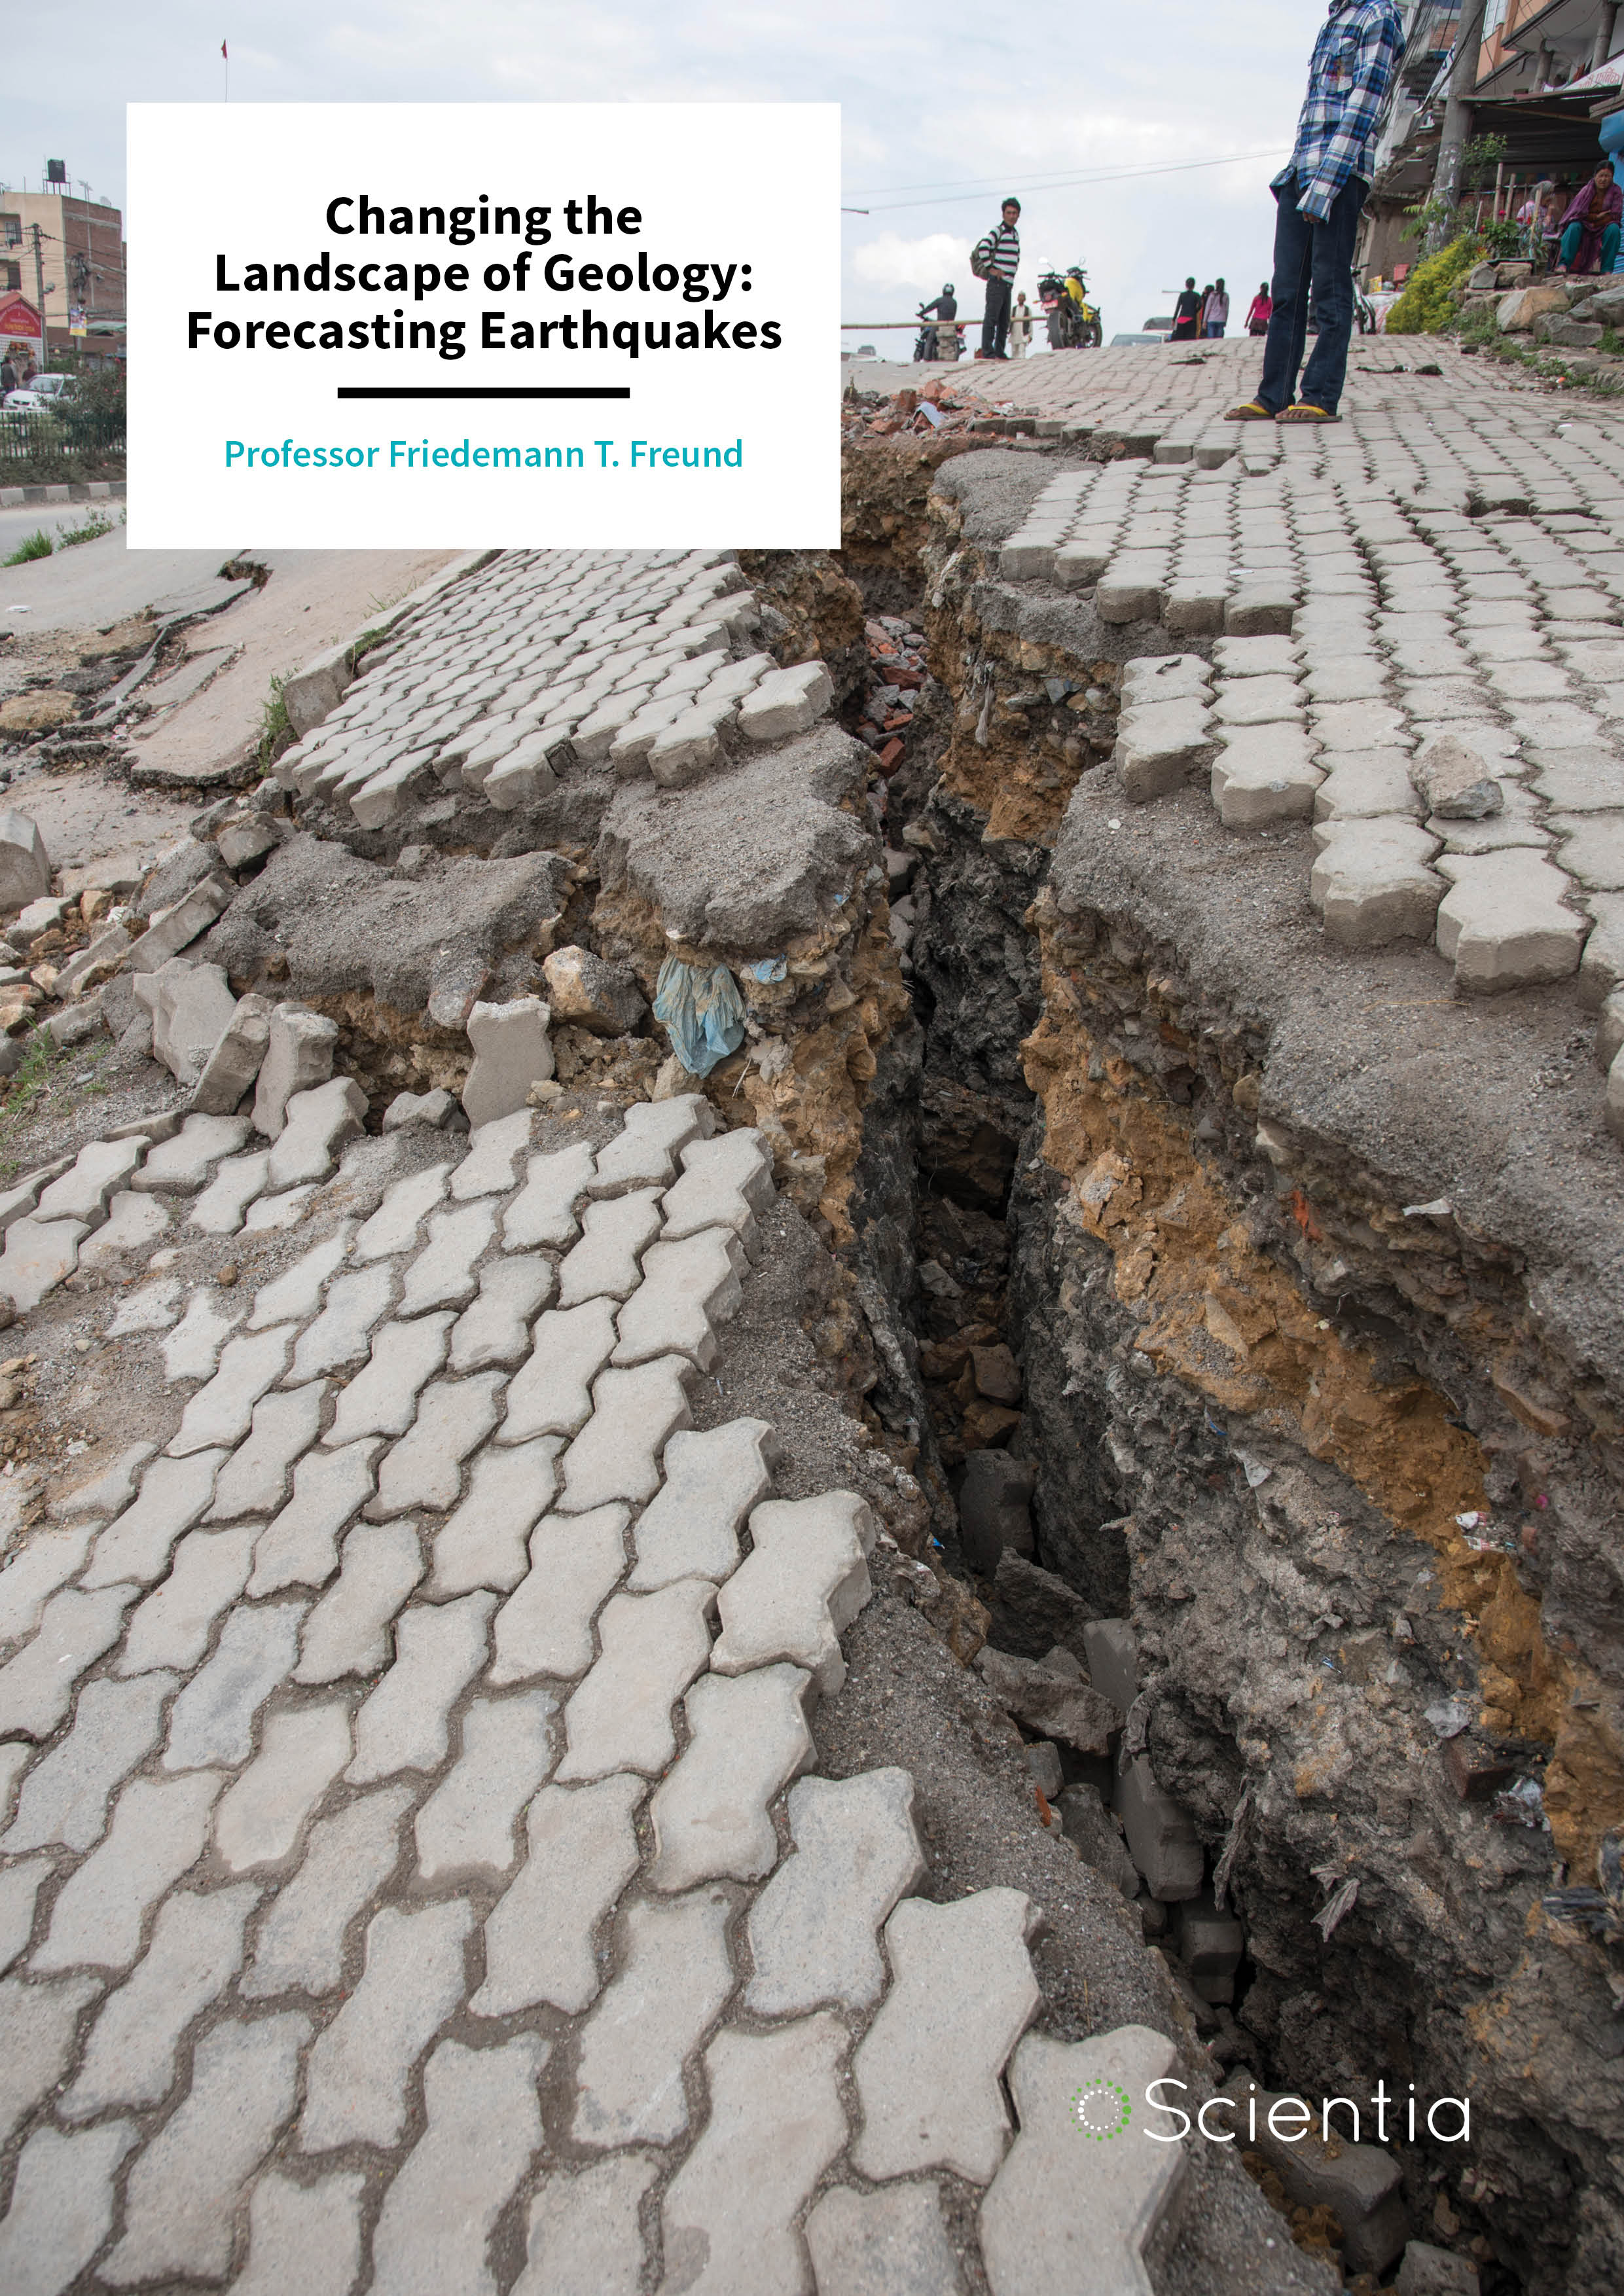 Professor Friedemann Freund – Changing the Landscape of Geology: Forecasting Earthquakes